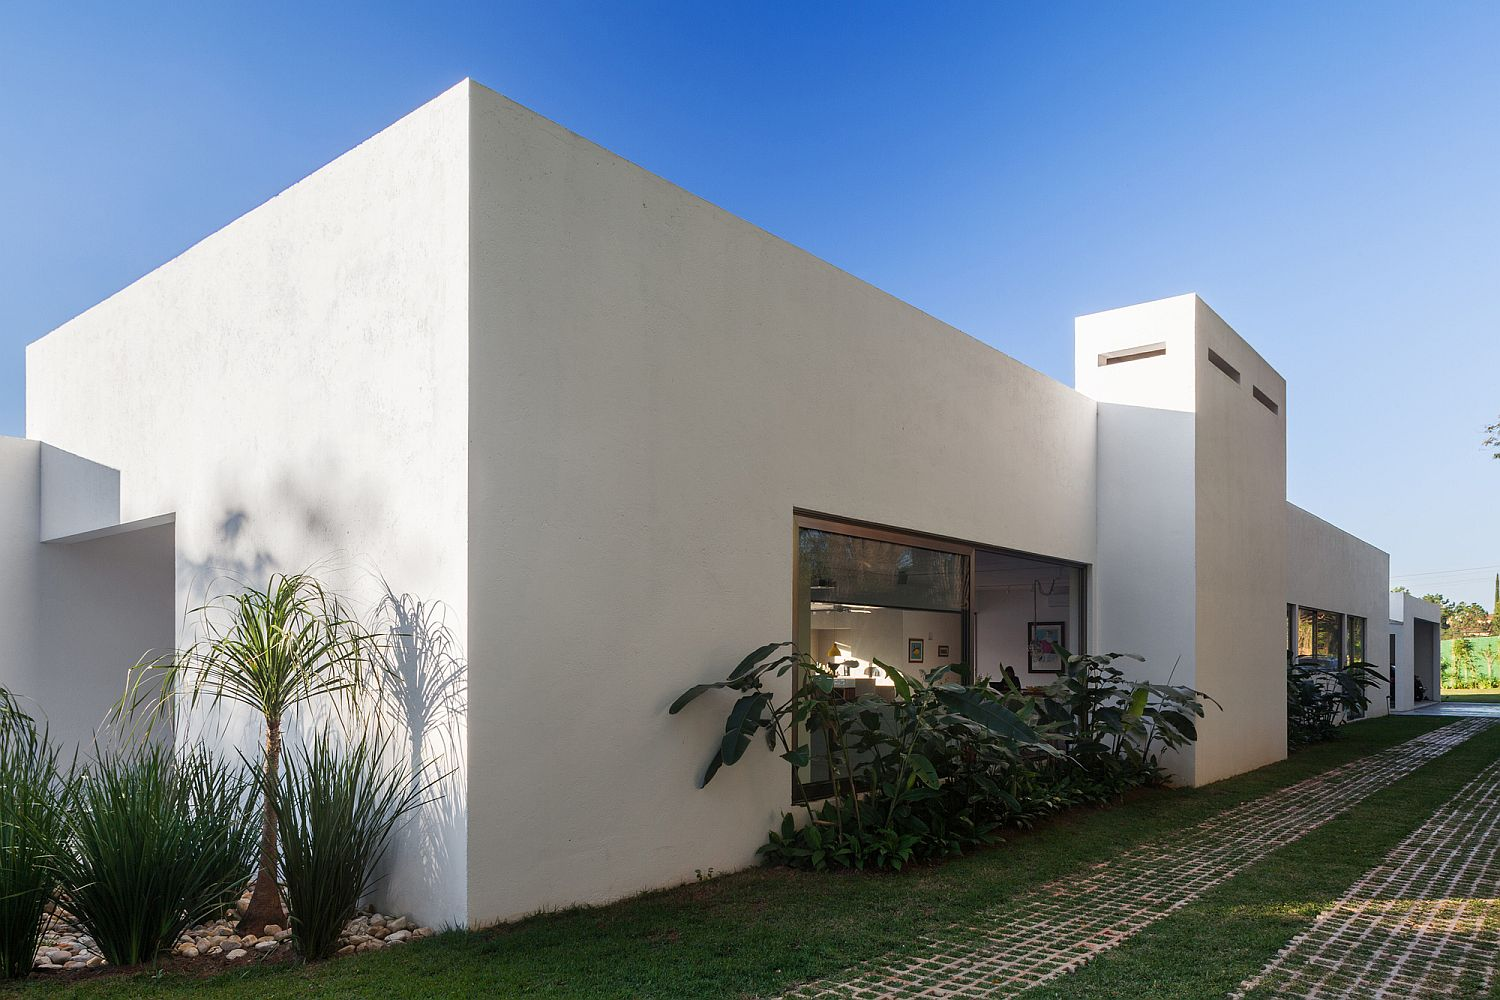 L-Shaped design of the family offers privacy within the central courtyard